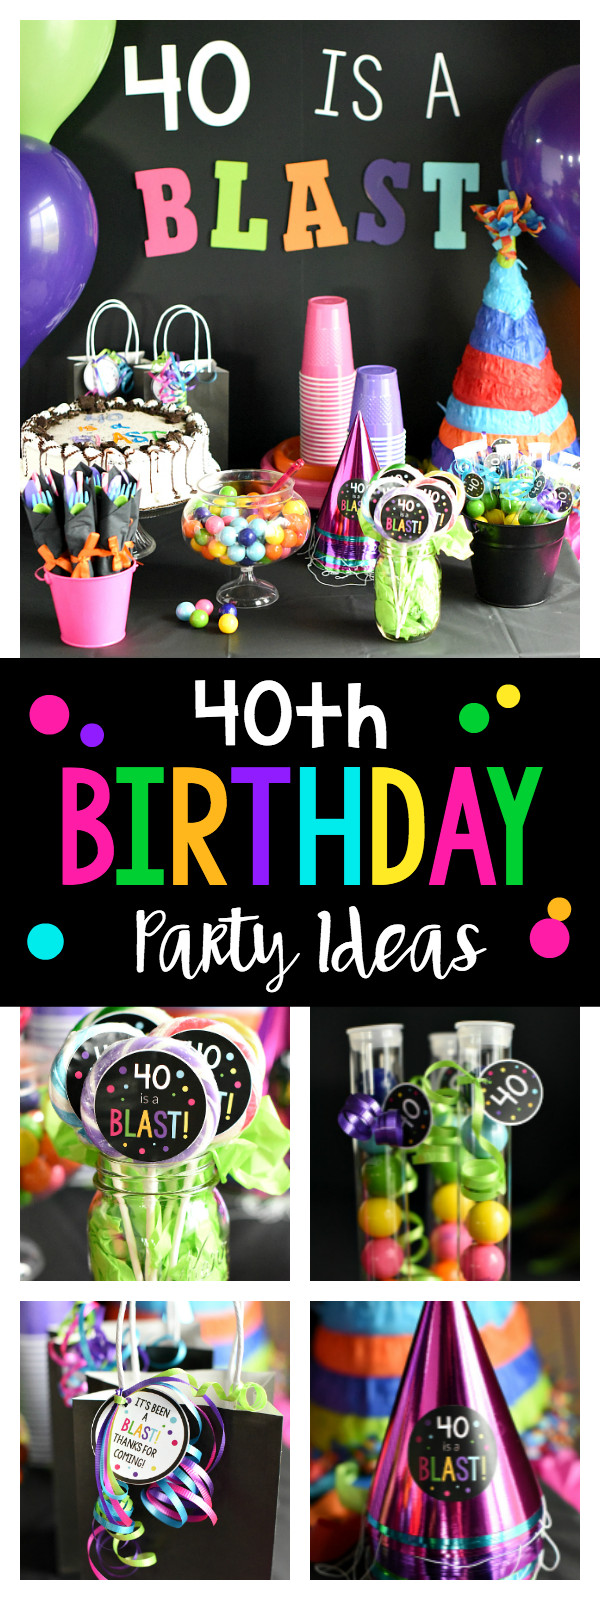 Best ideas about 40 Birthday Decorations . Save or Pin 40th Birthday Party 40 is a Blast – Fun Squared Now.